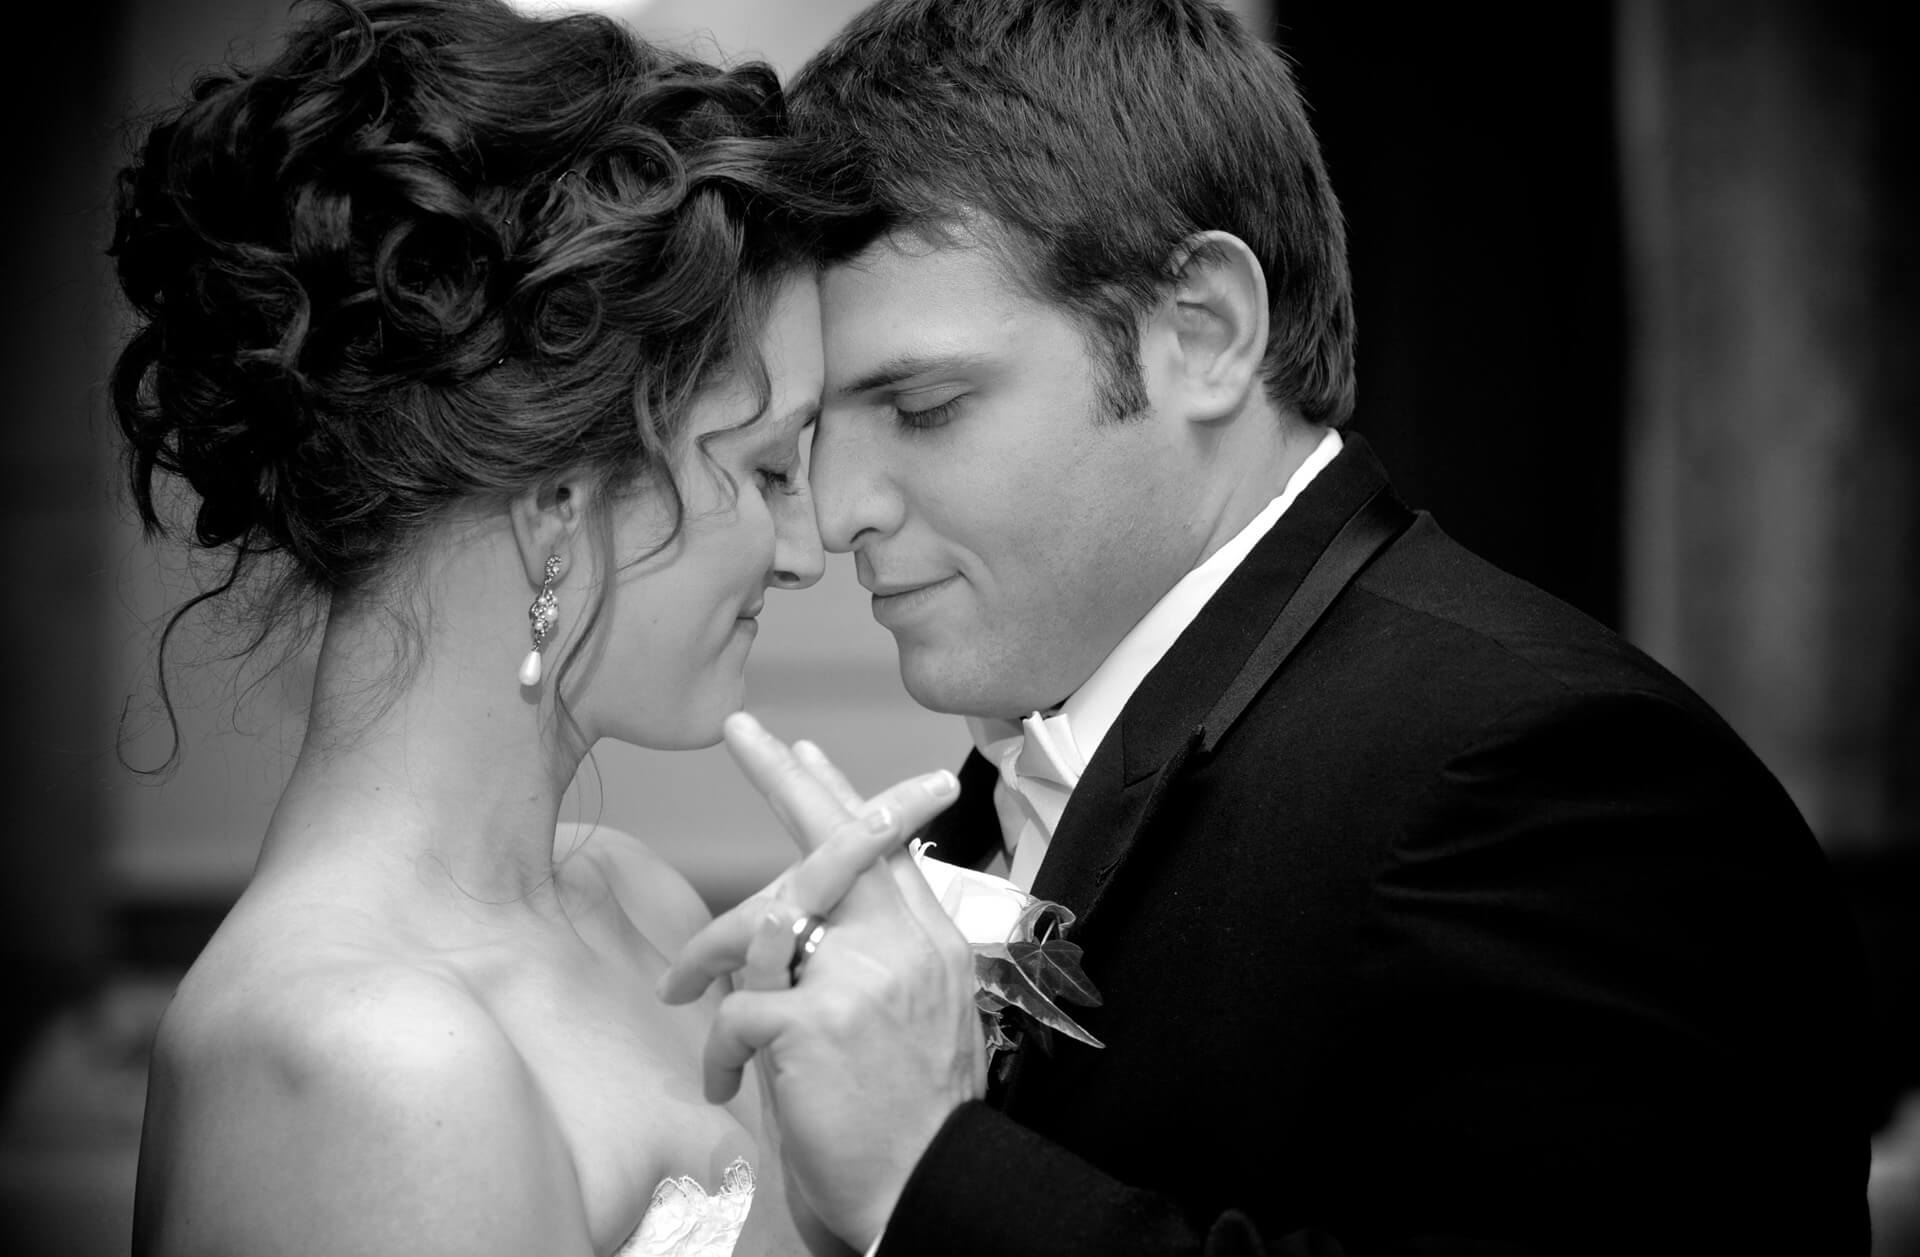 michigan wedding photographer photographs a couples first dance that the Inn at St. John's in Plymouth, Michigan.